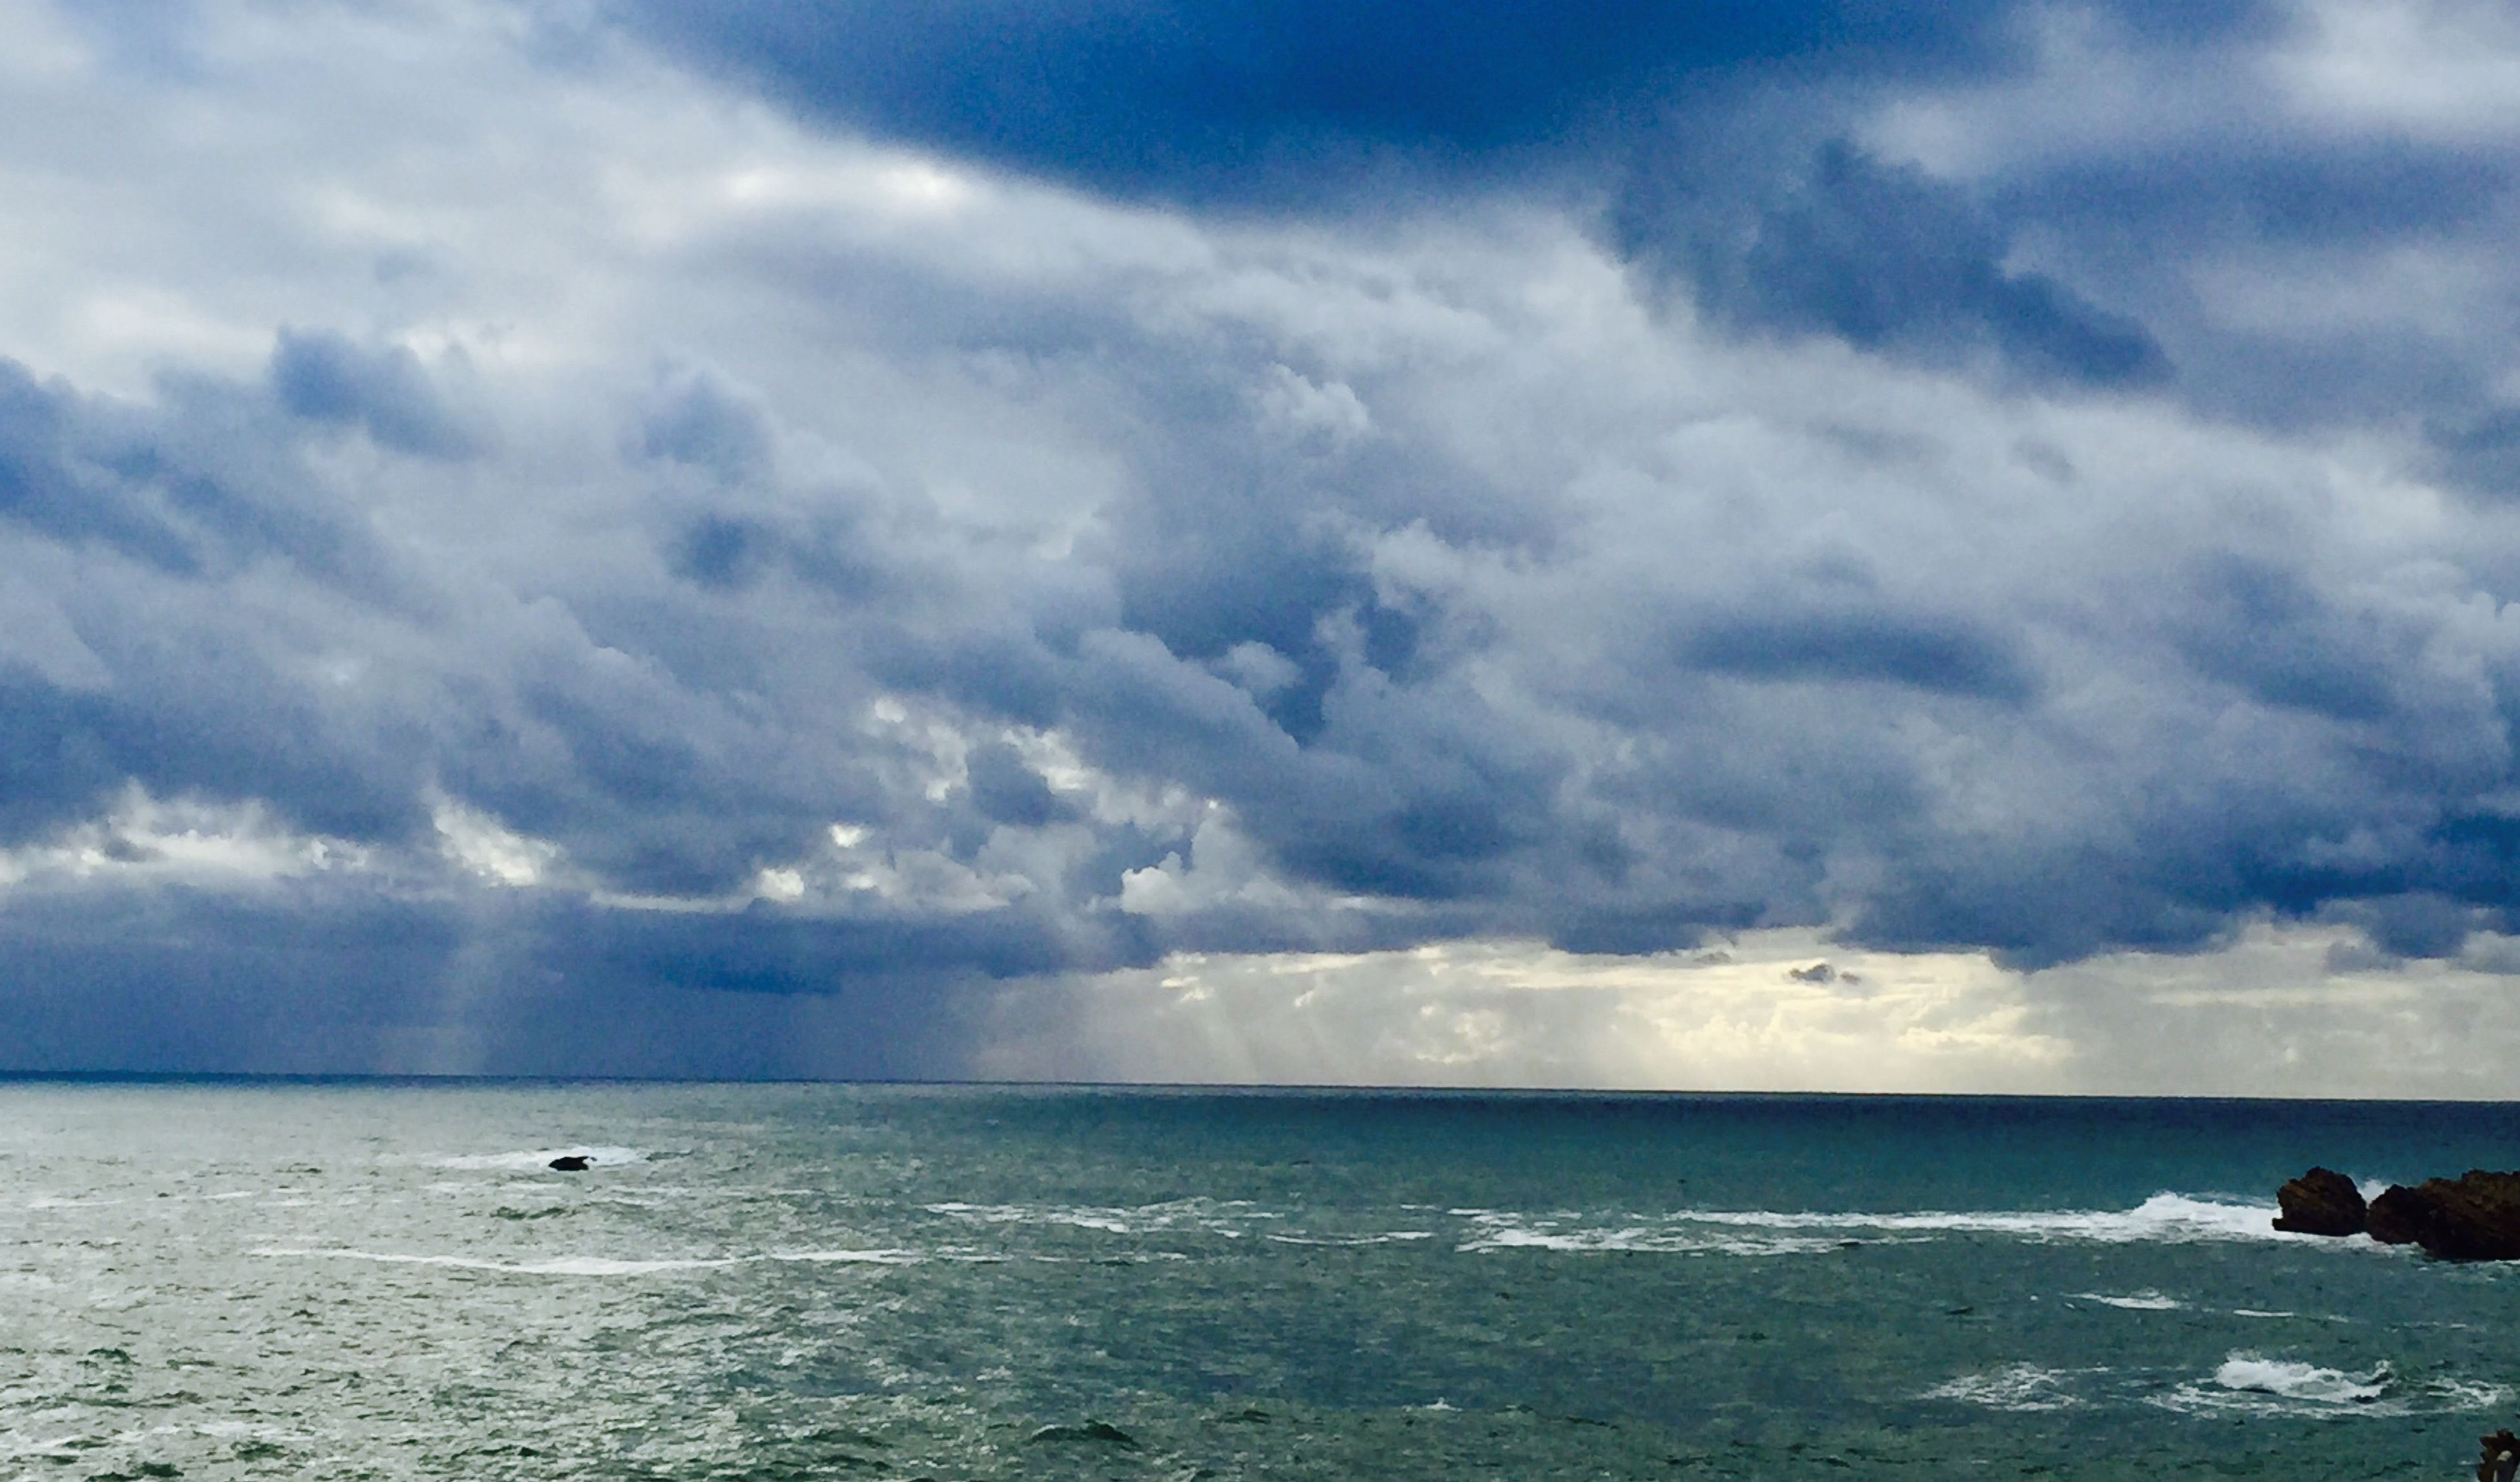 sea, cloud - sky, sky, water, nature, scenics, beauty in nature, horizon over water, outdoors, beach, day, no people